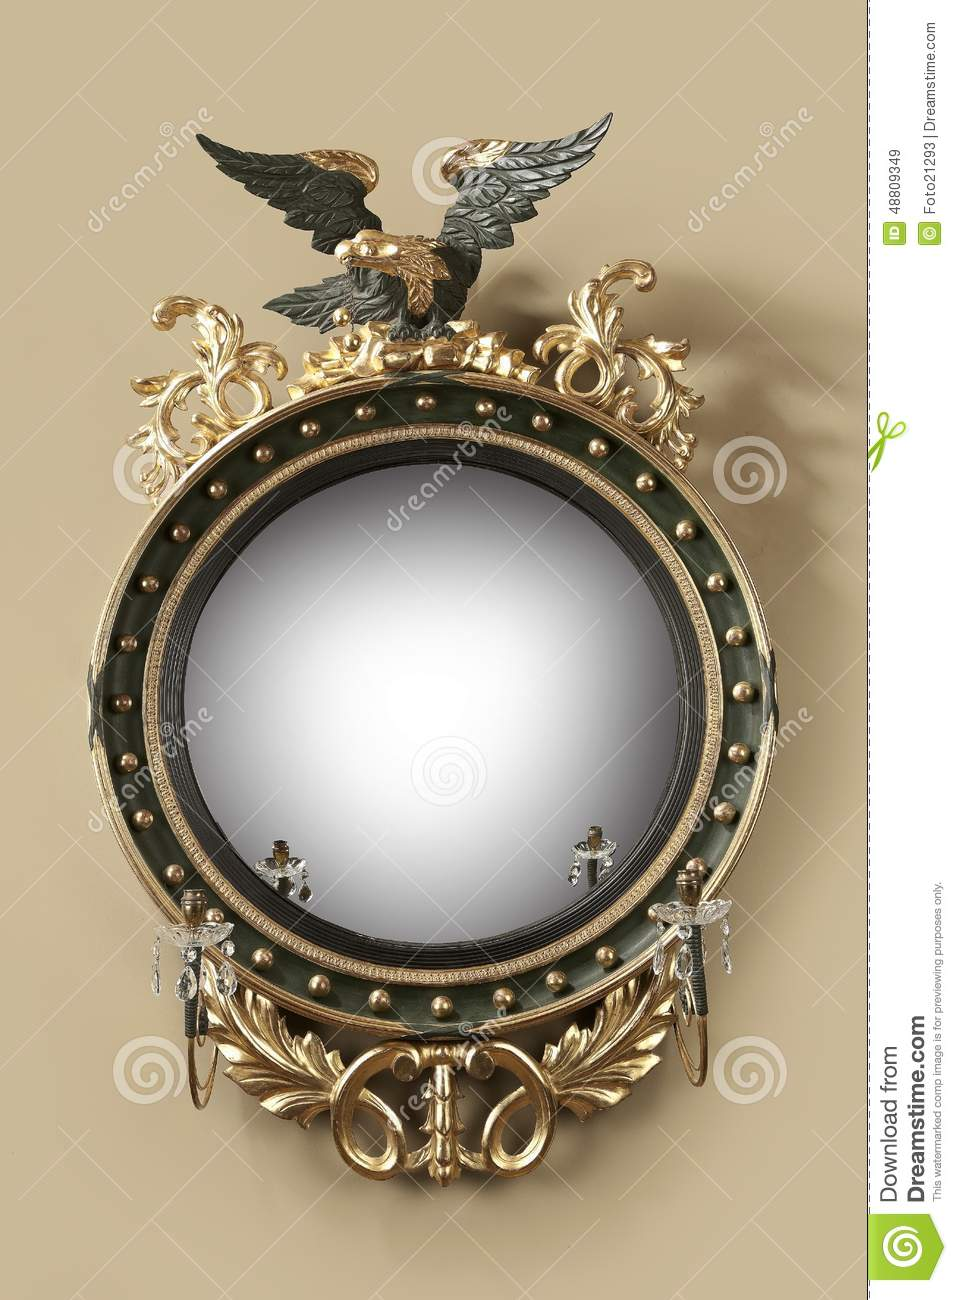 Antique Round Hall Mirror Stock Image Image Of Gold